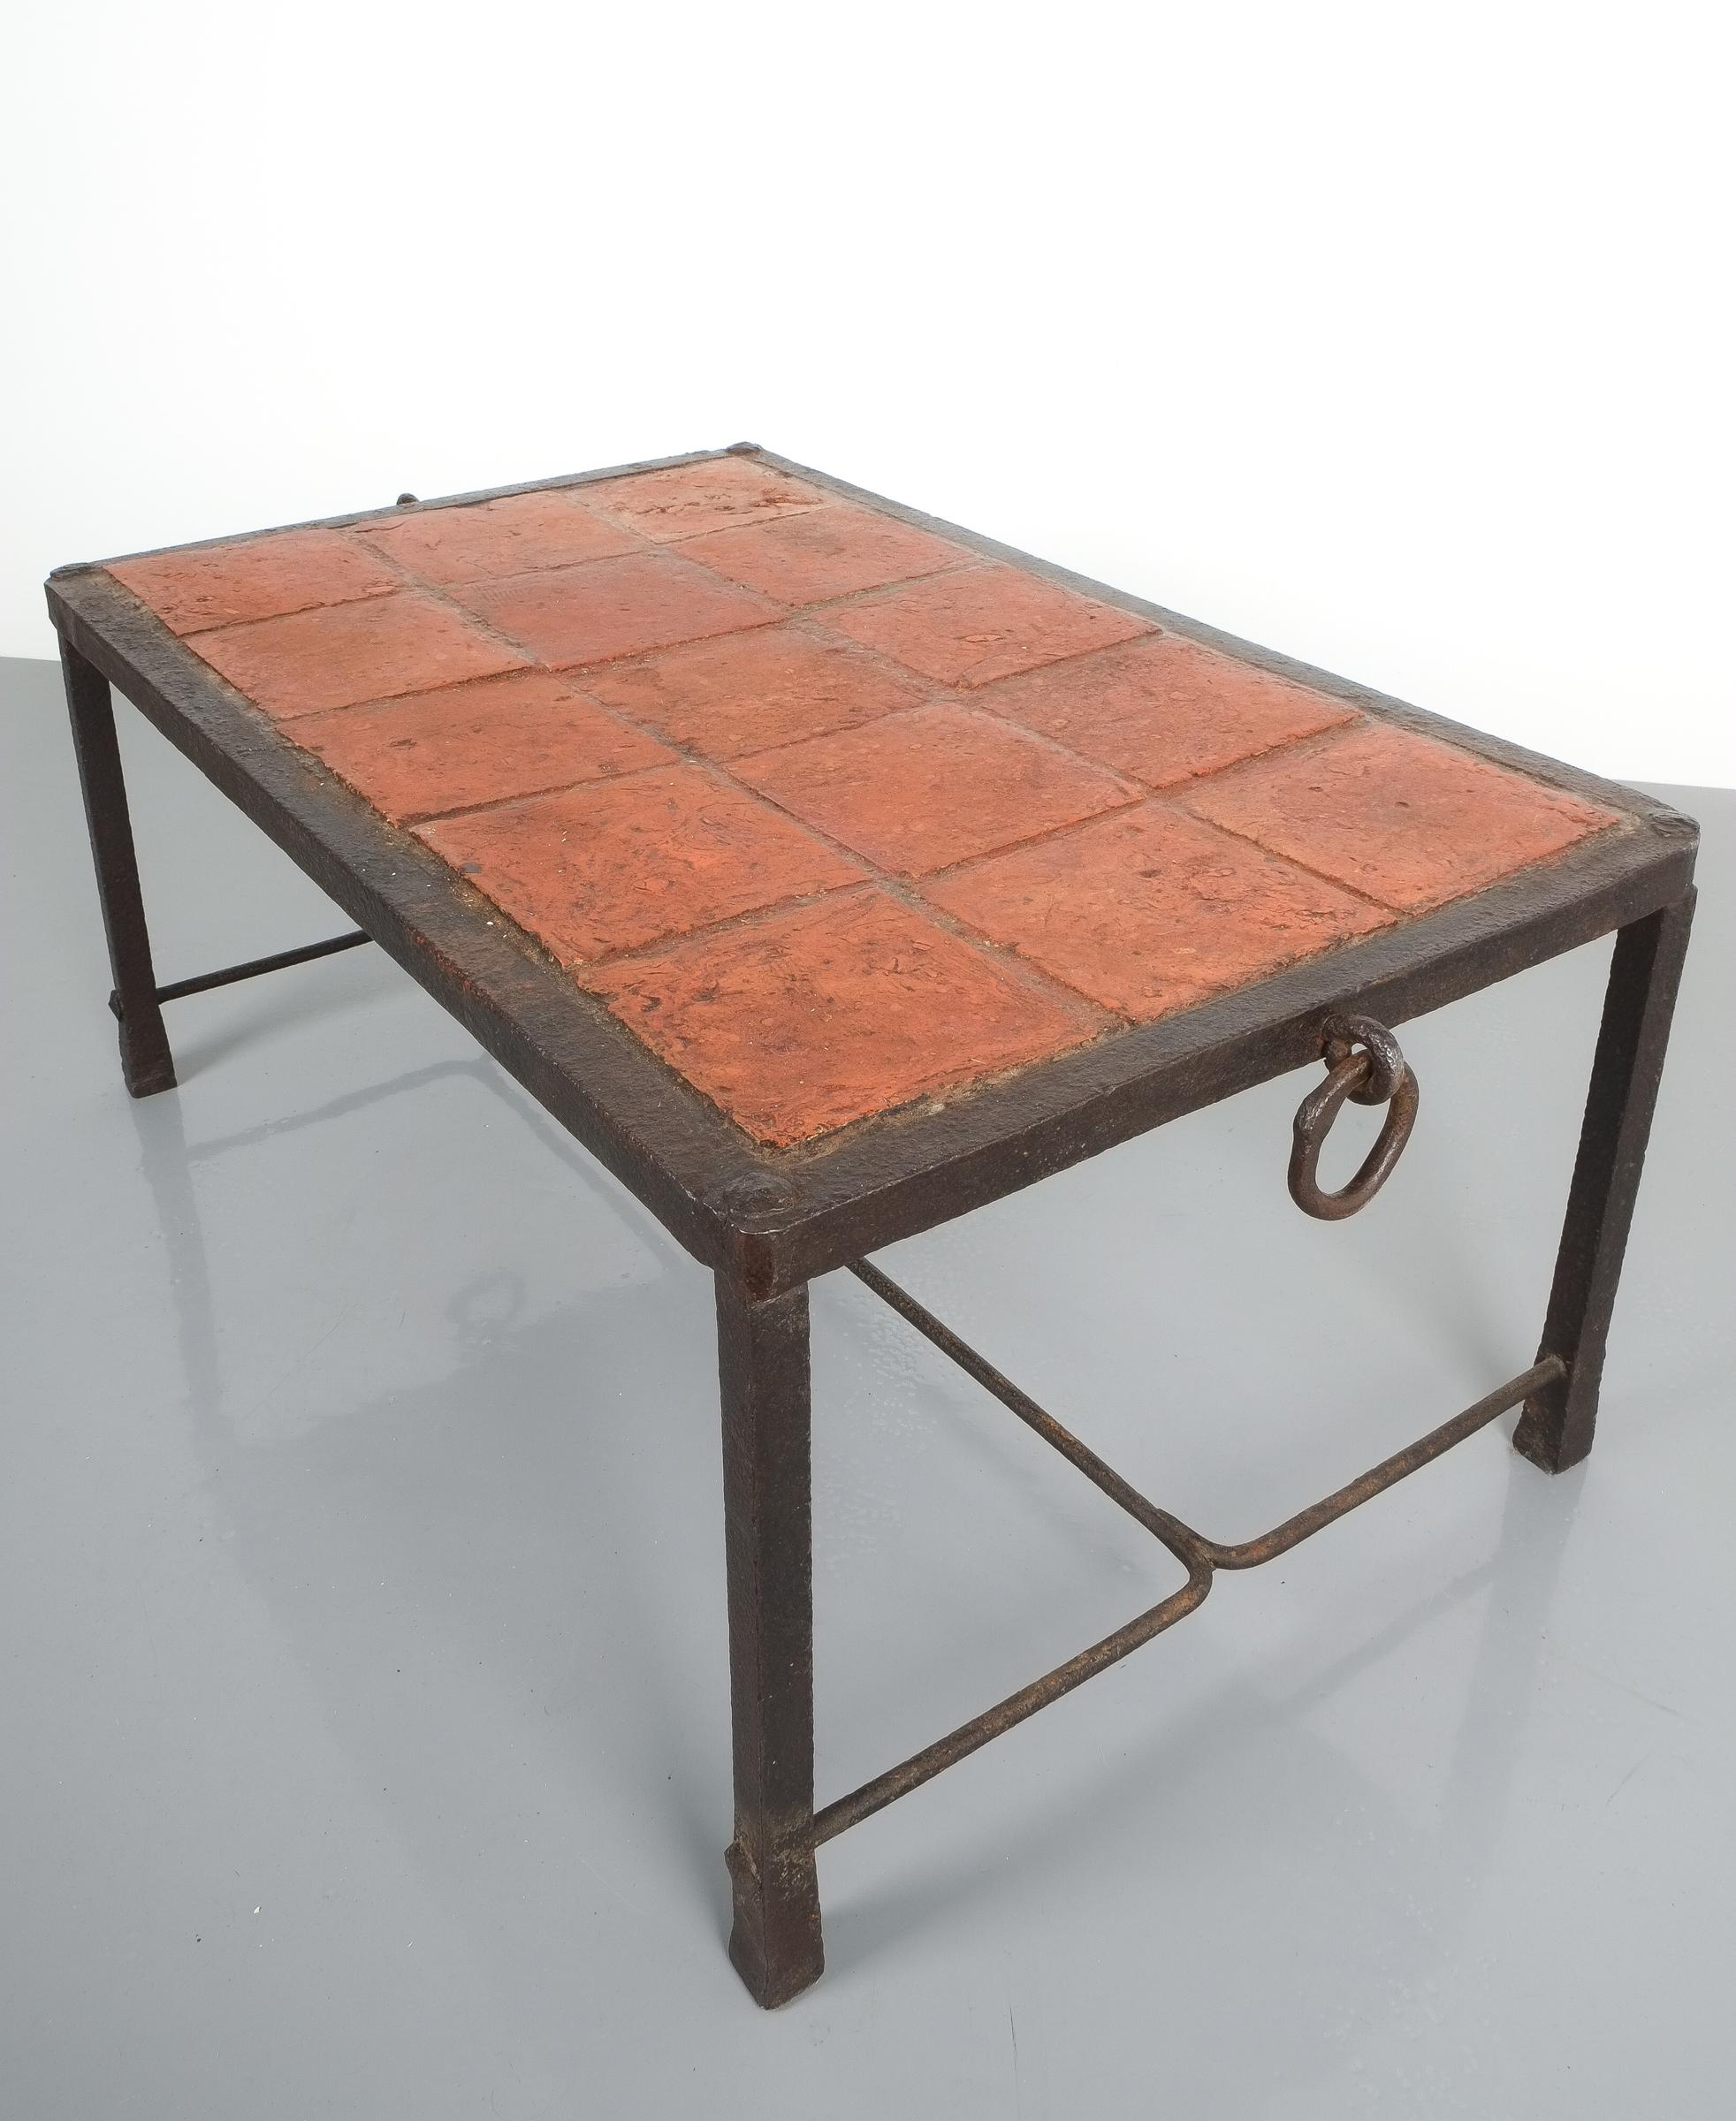 Artisan wrought iron terracotta coffee table france 1950 for sale at 1stdibs